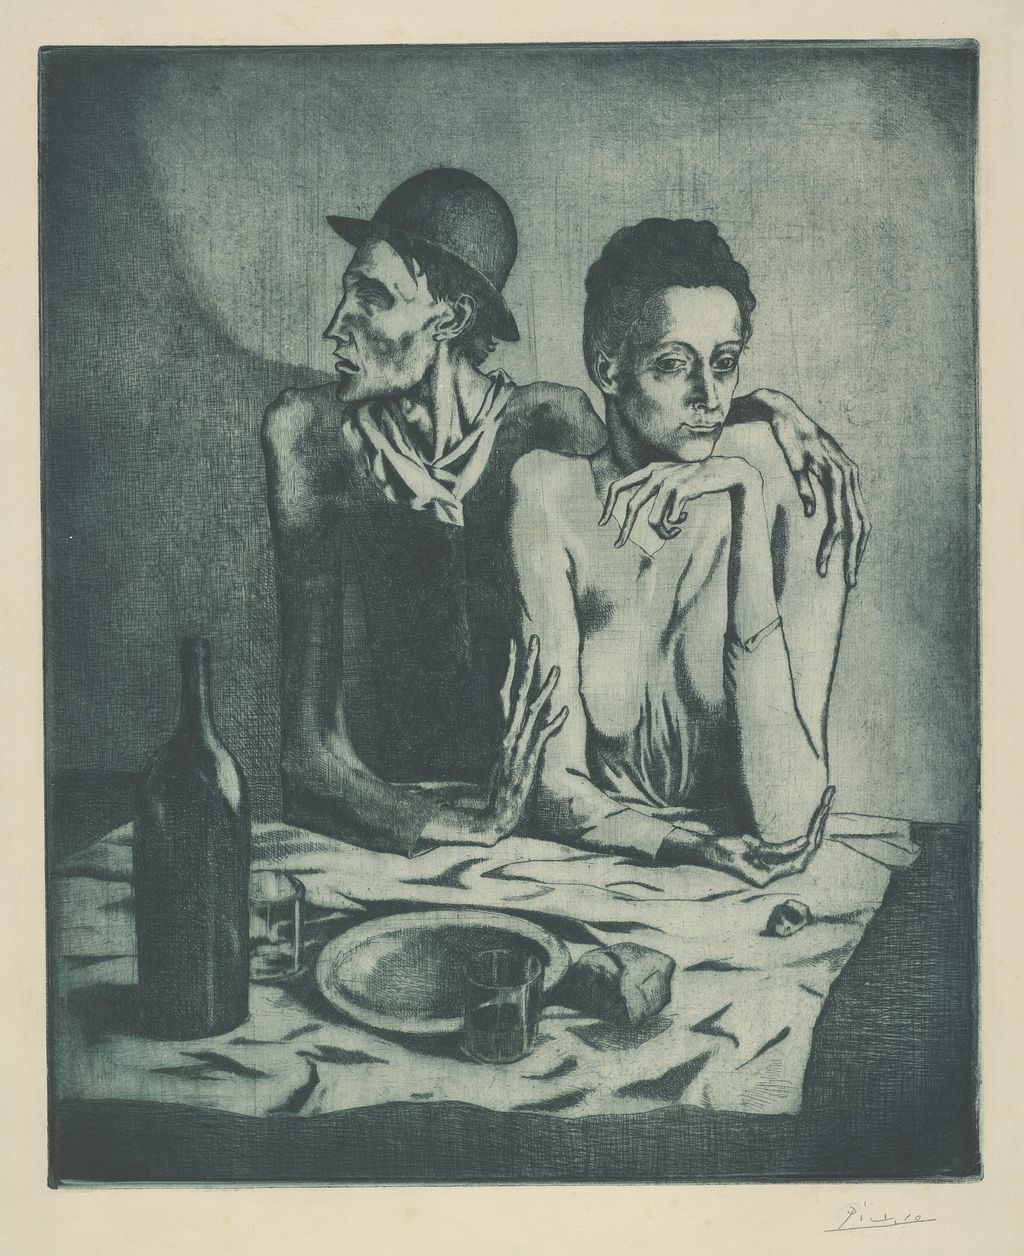 Pablo Picasso. The Frugal Meal, from The Saltimbanques,1904. The Art Institute of Chicago, Clarence Buckingham Collection. © 2013 Estate of Pablo Picasso / Artists Rights Society (ARS), New York.